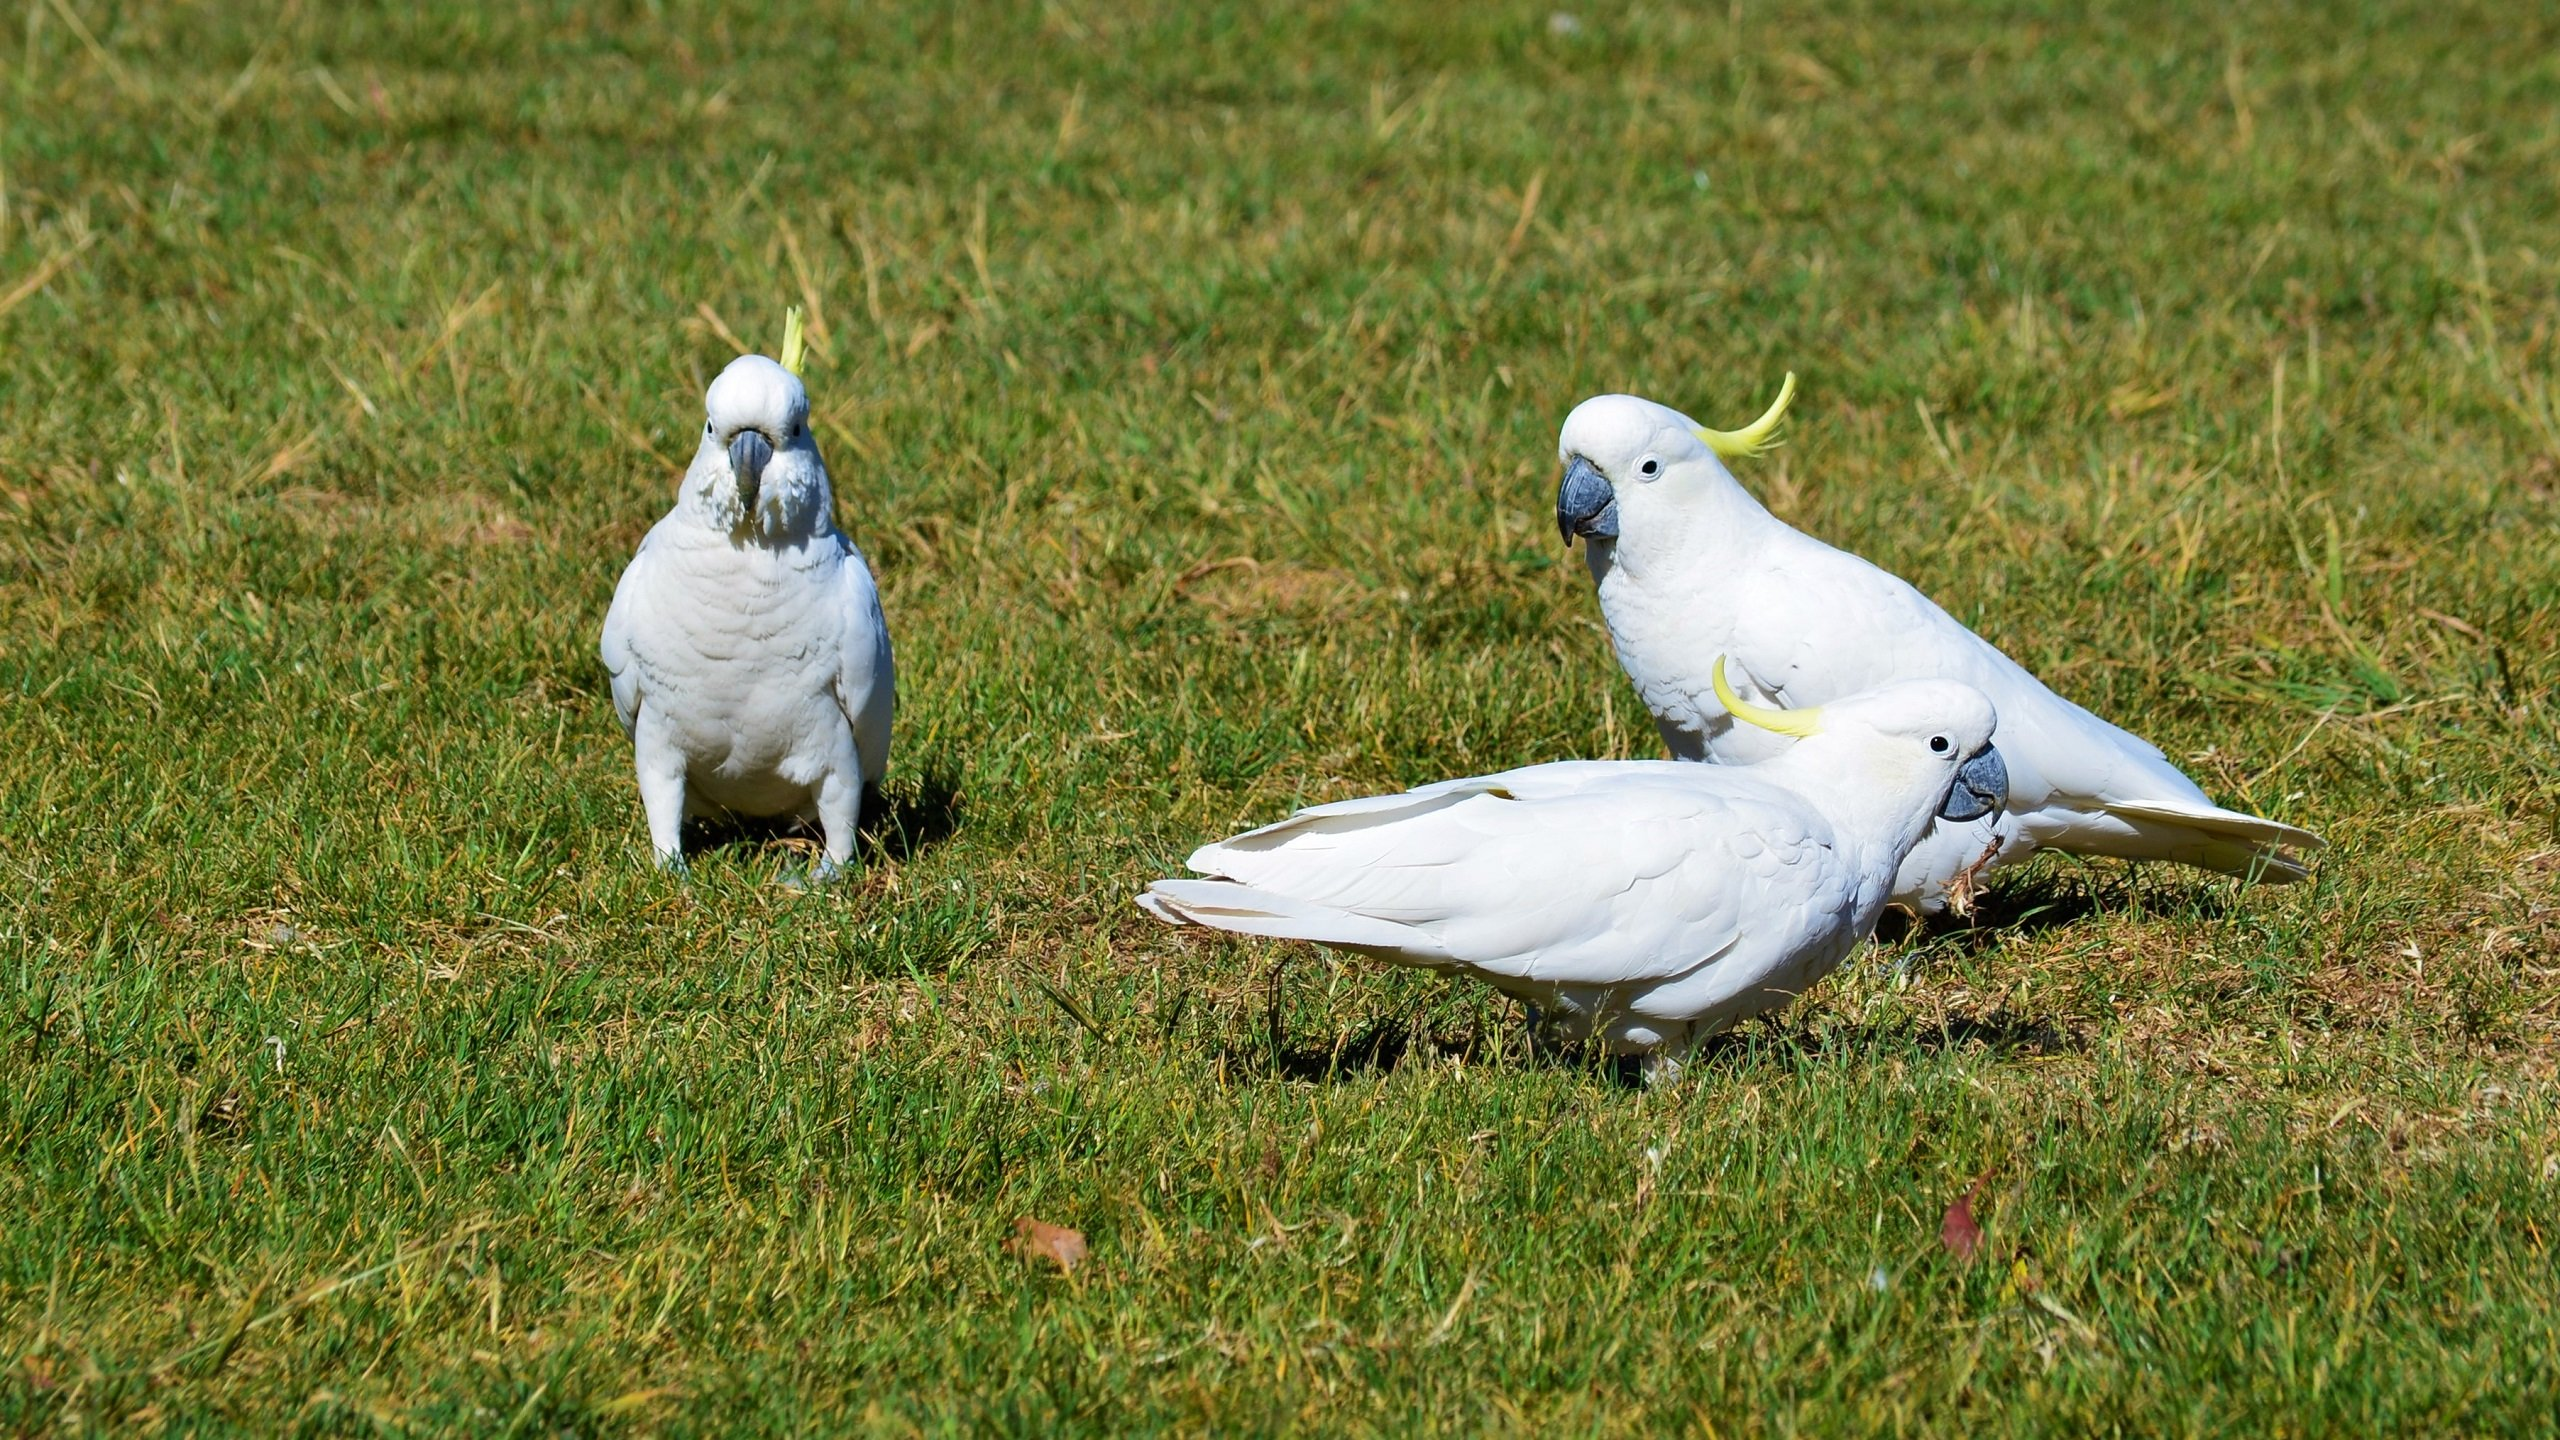 Download hd 2560x1440 Sulphur-crested Cockatoo desktop wallpaper ID:130234 for free